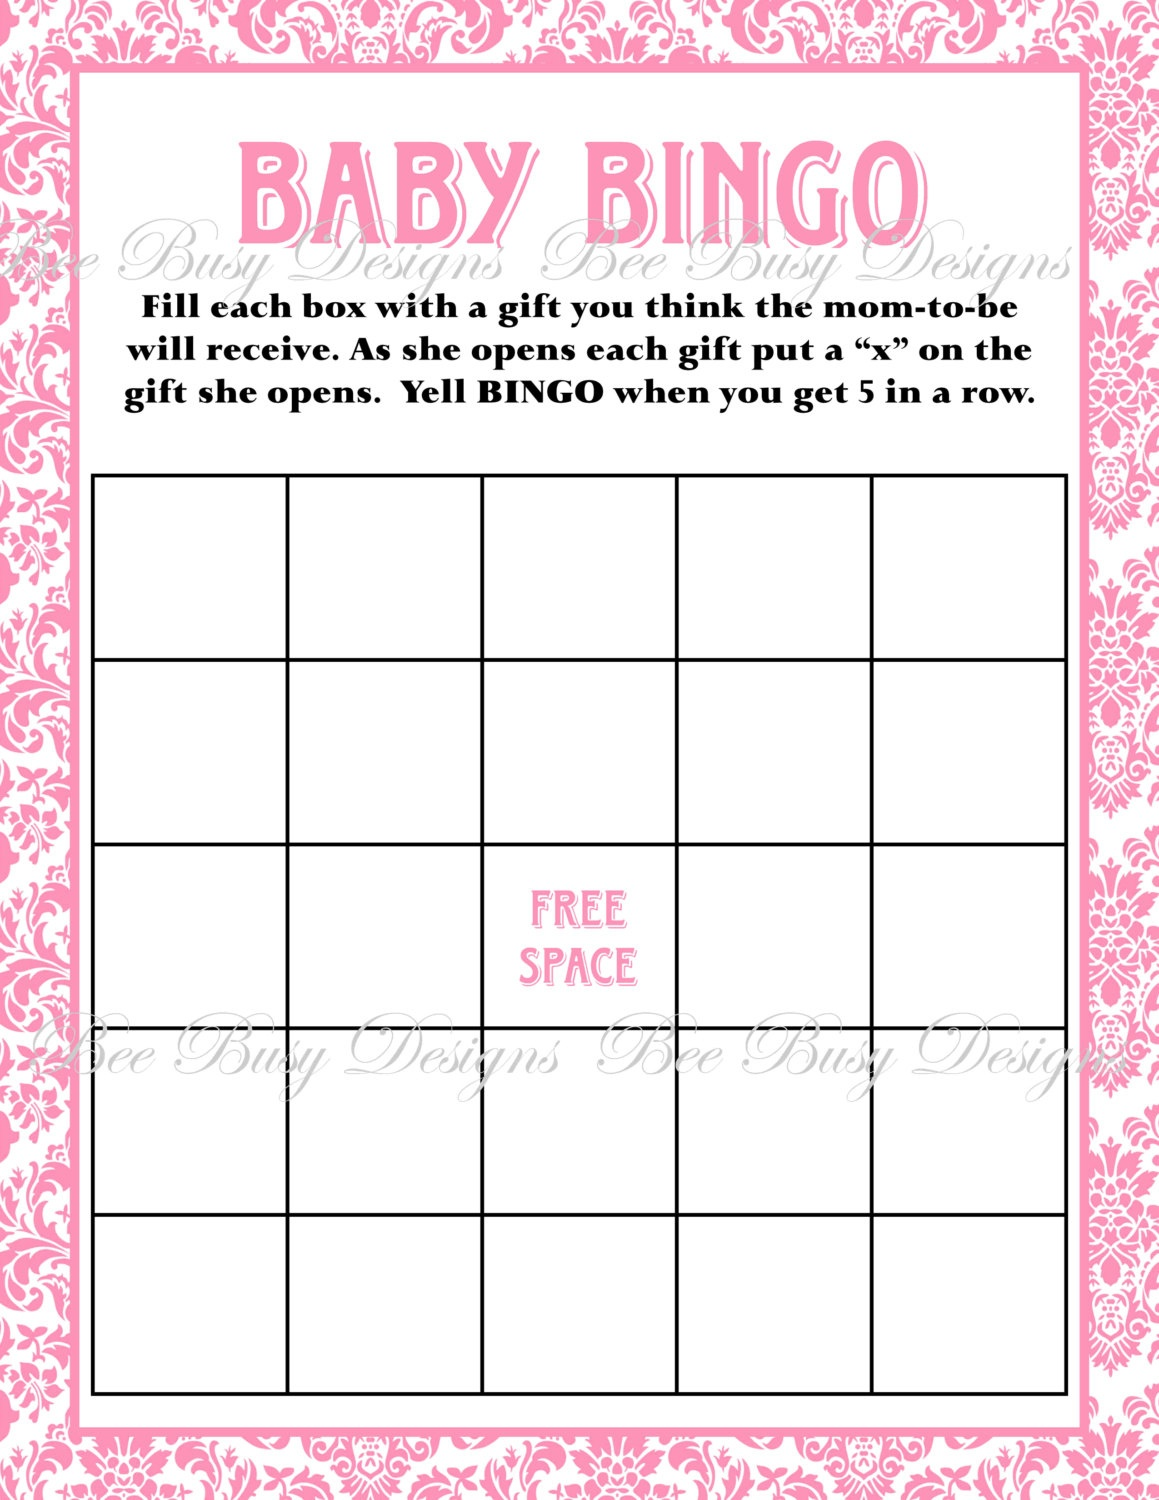 Free Printable Baby Shower Bingo Cards For 30 People (86+ Images In - Free Printable Baby Shower Bingo For 50 People